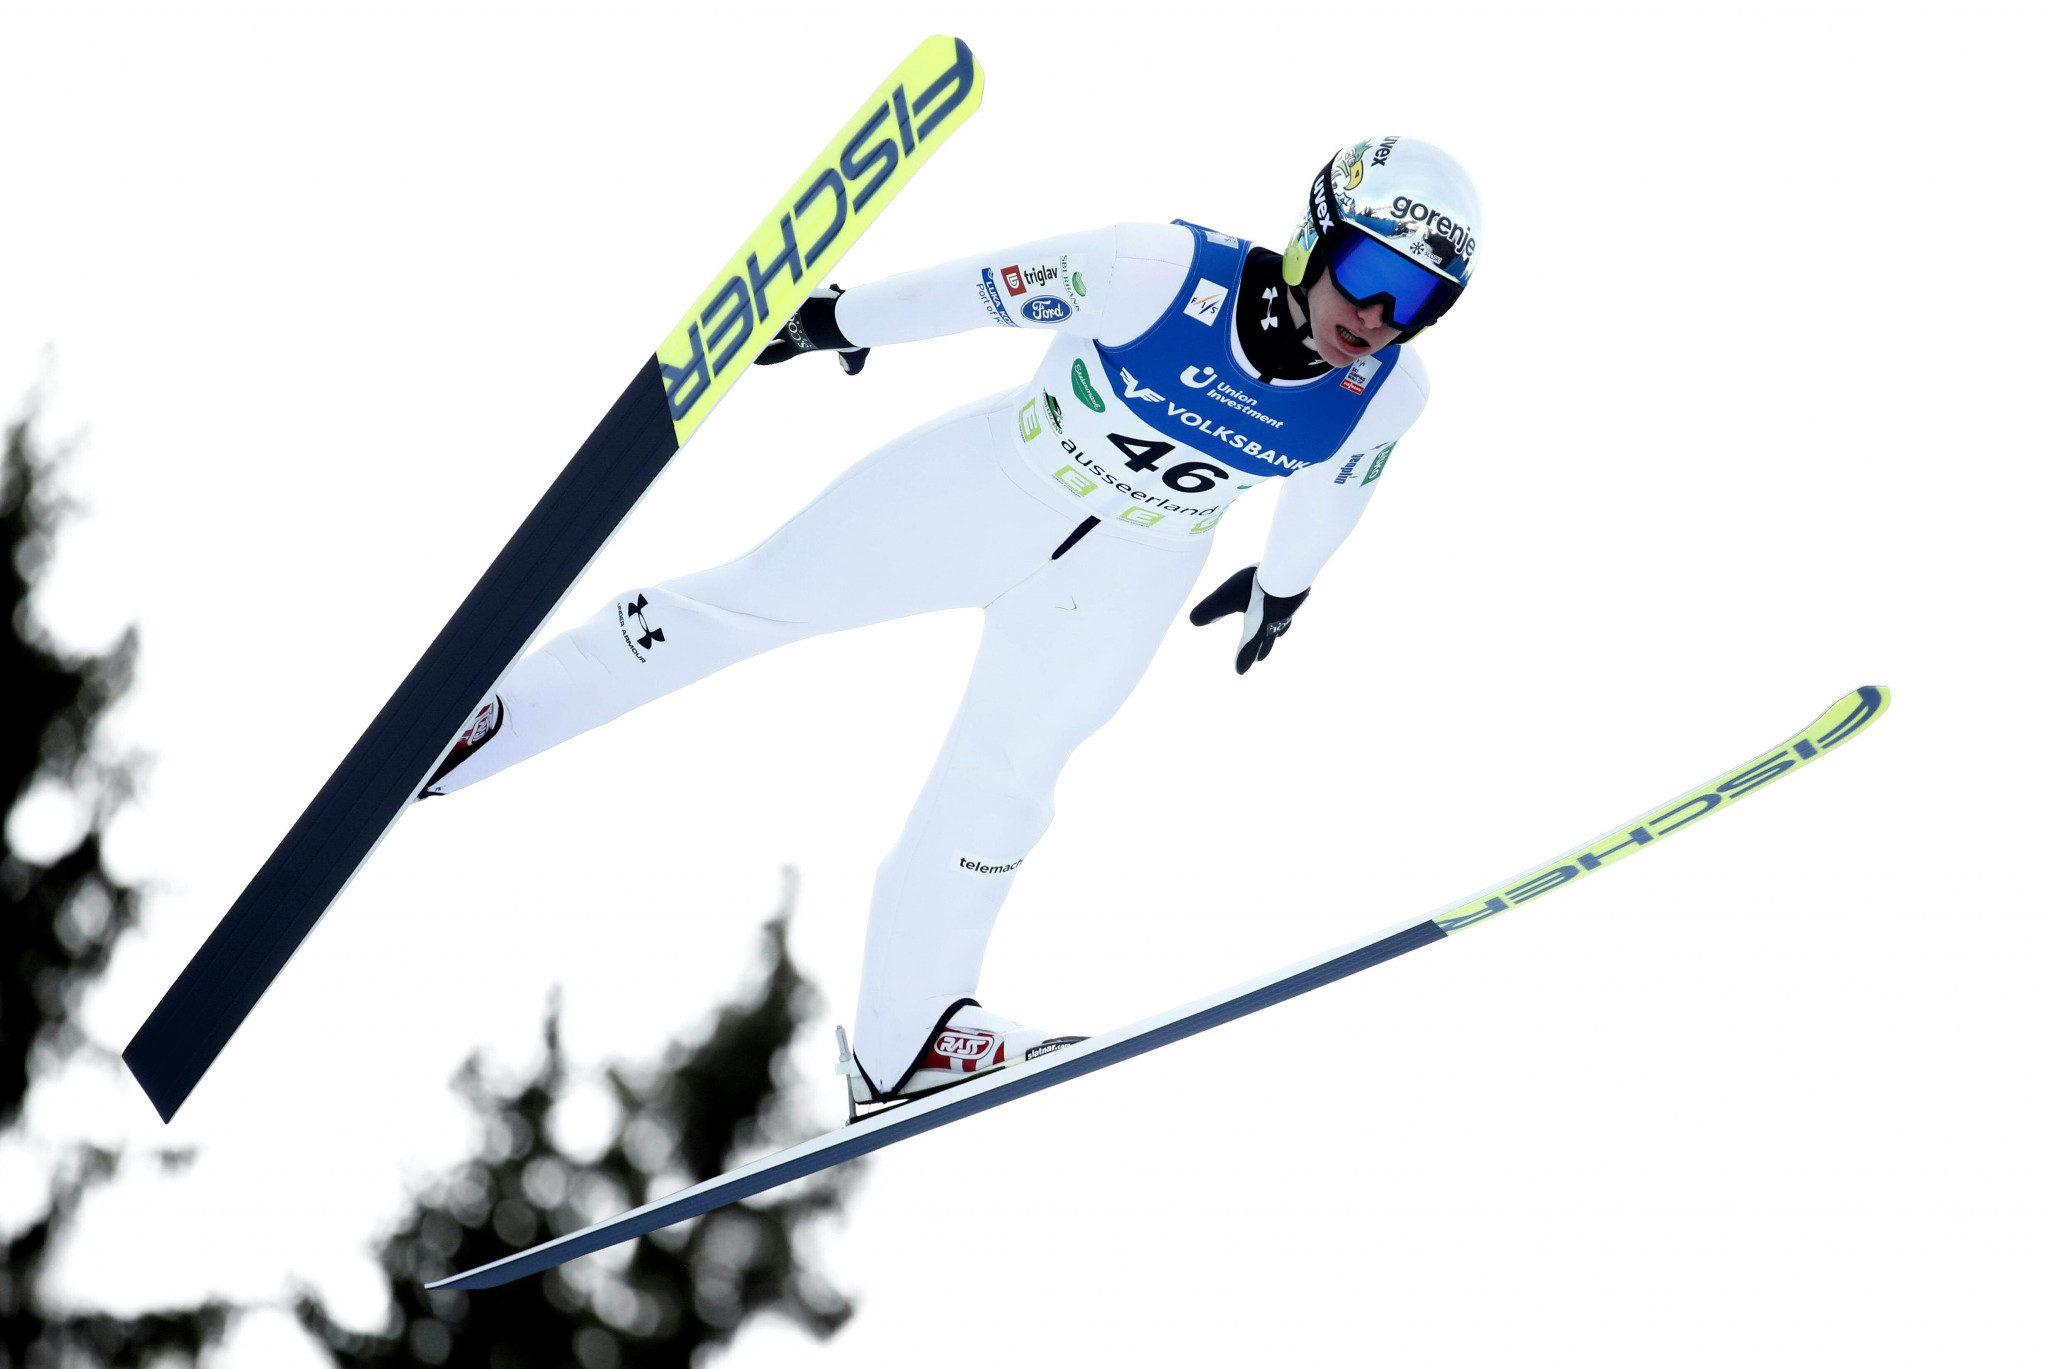 Prevc wins rescheduled FIS Ski Jumping World Cup event in Lillehammer